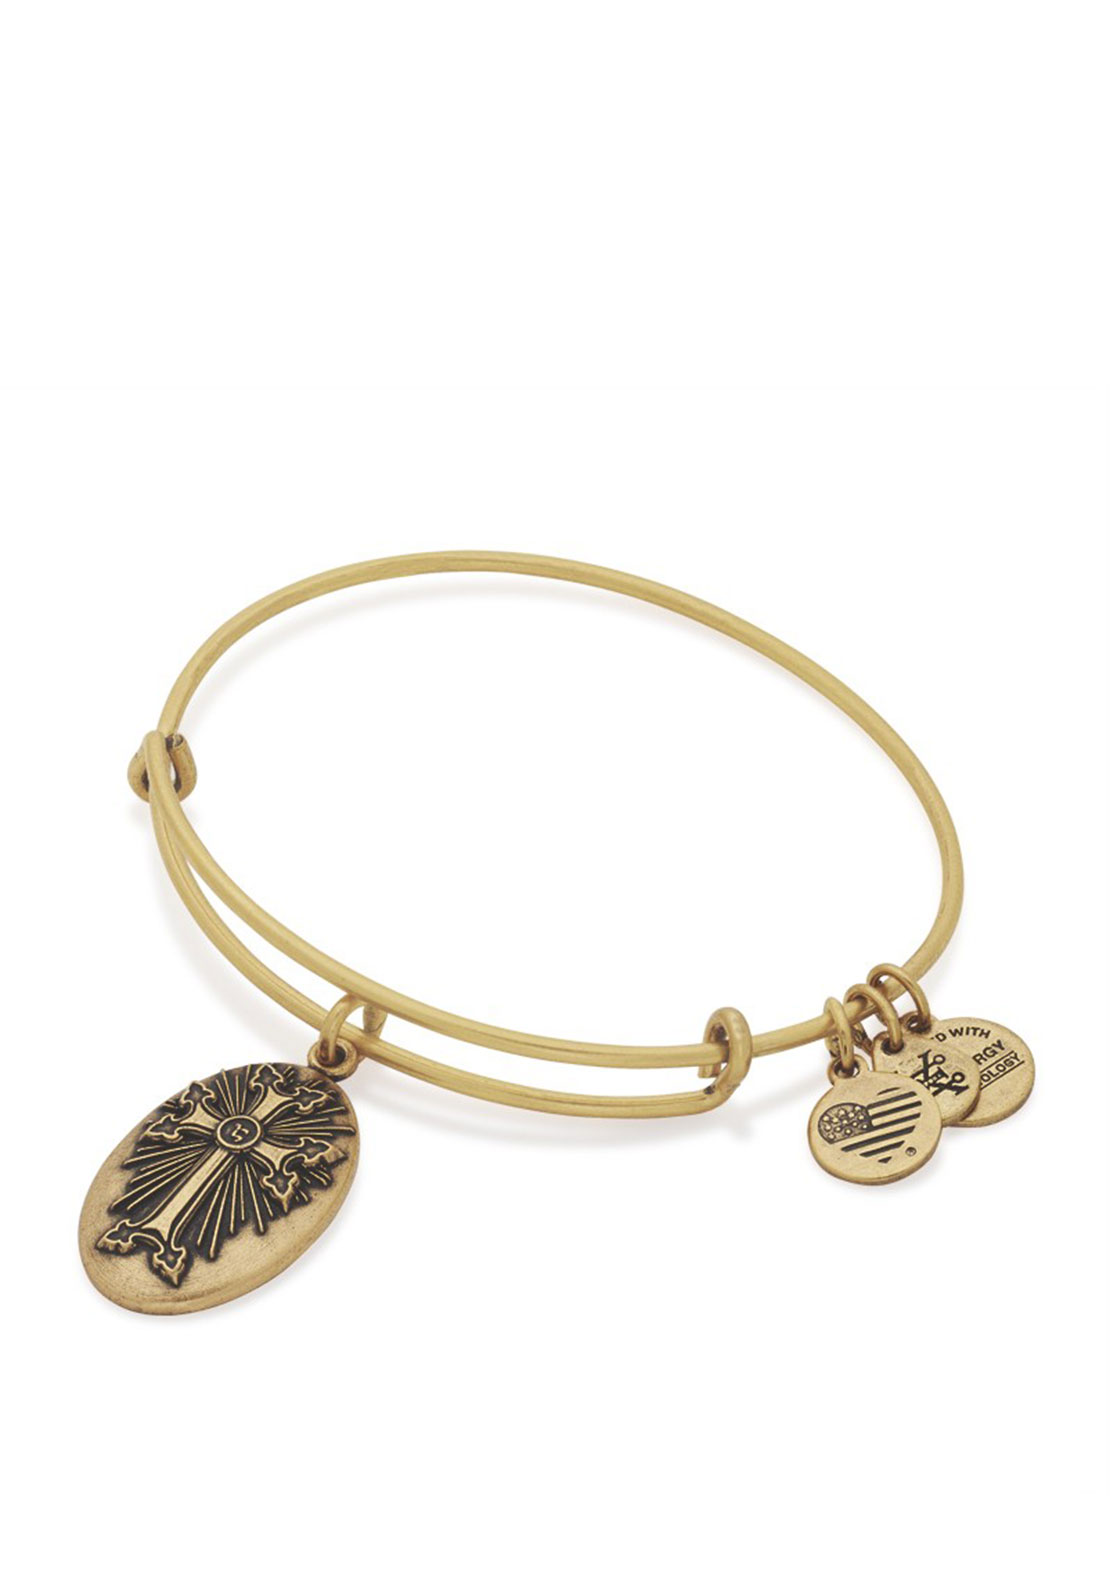 Alex and Ani Armenian Cross Charm Bracelet, Gold